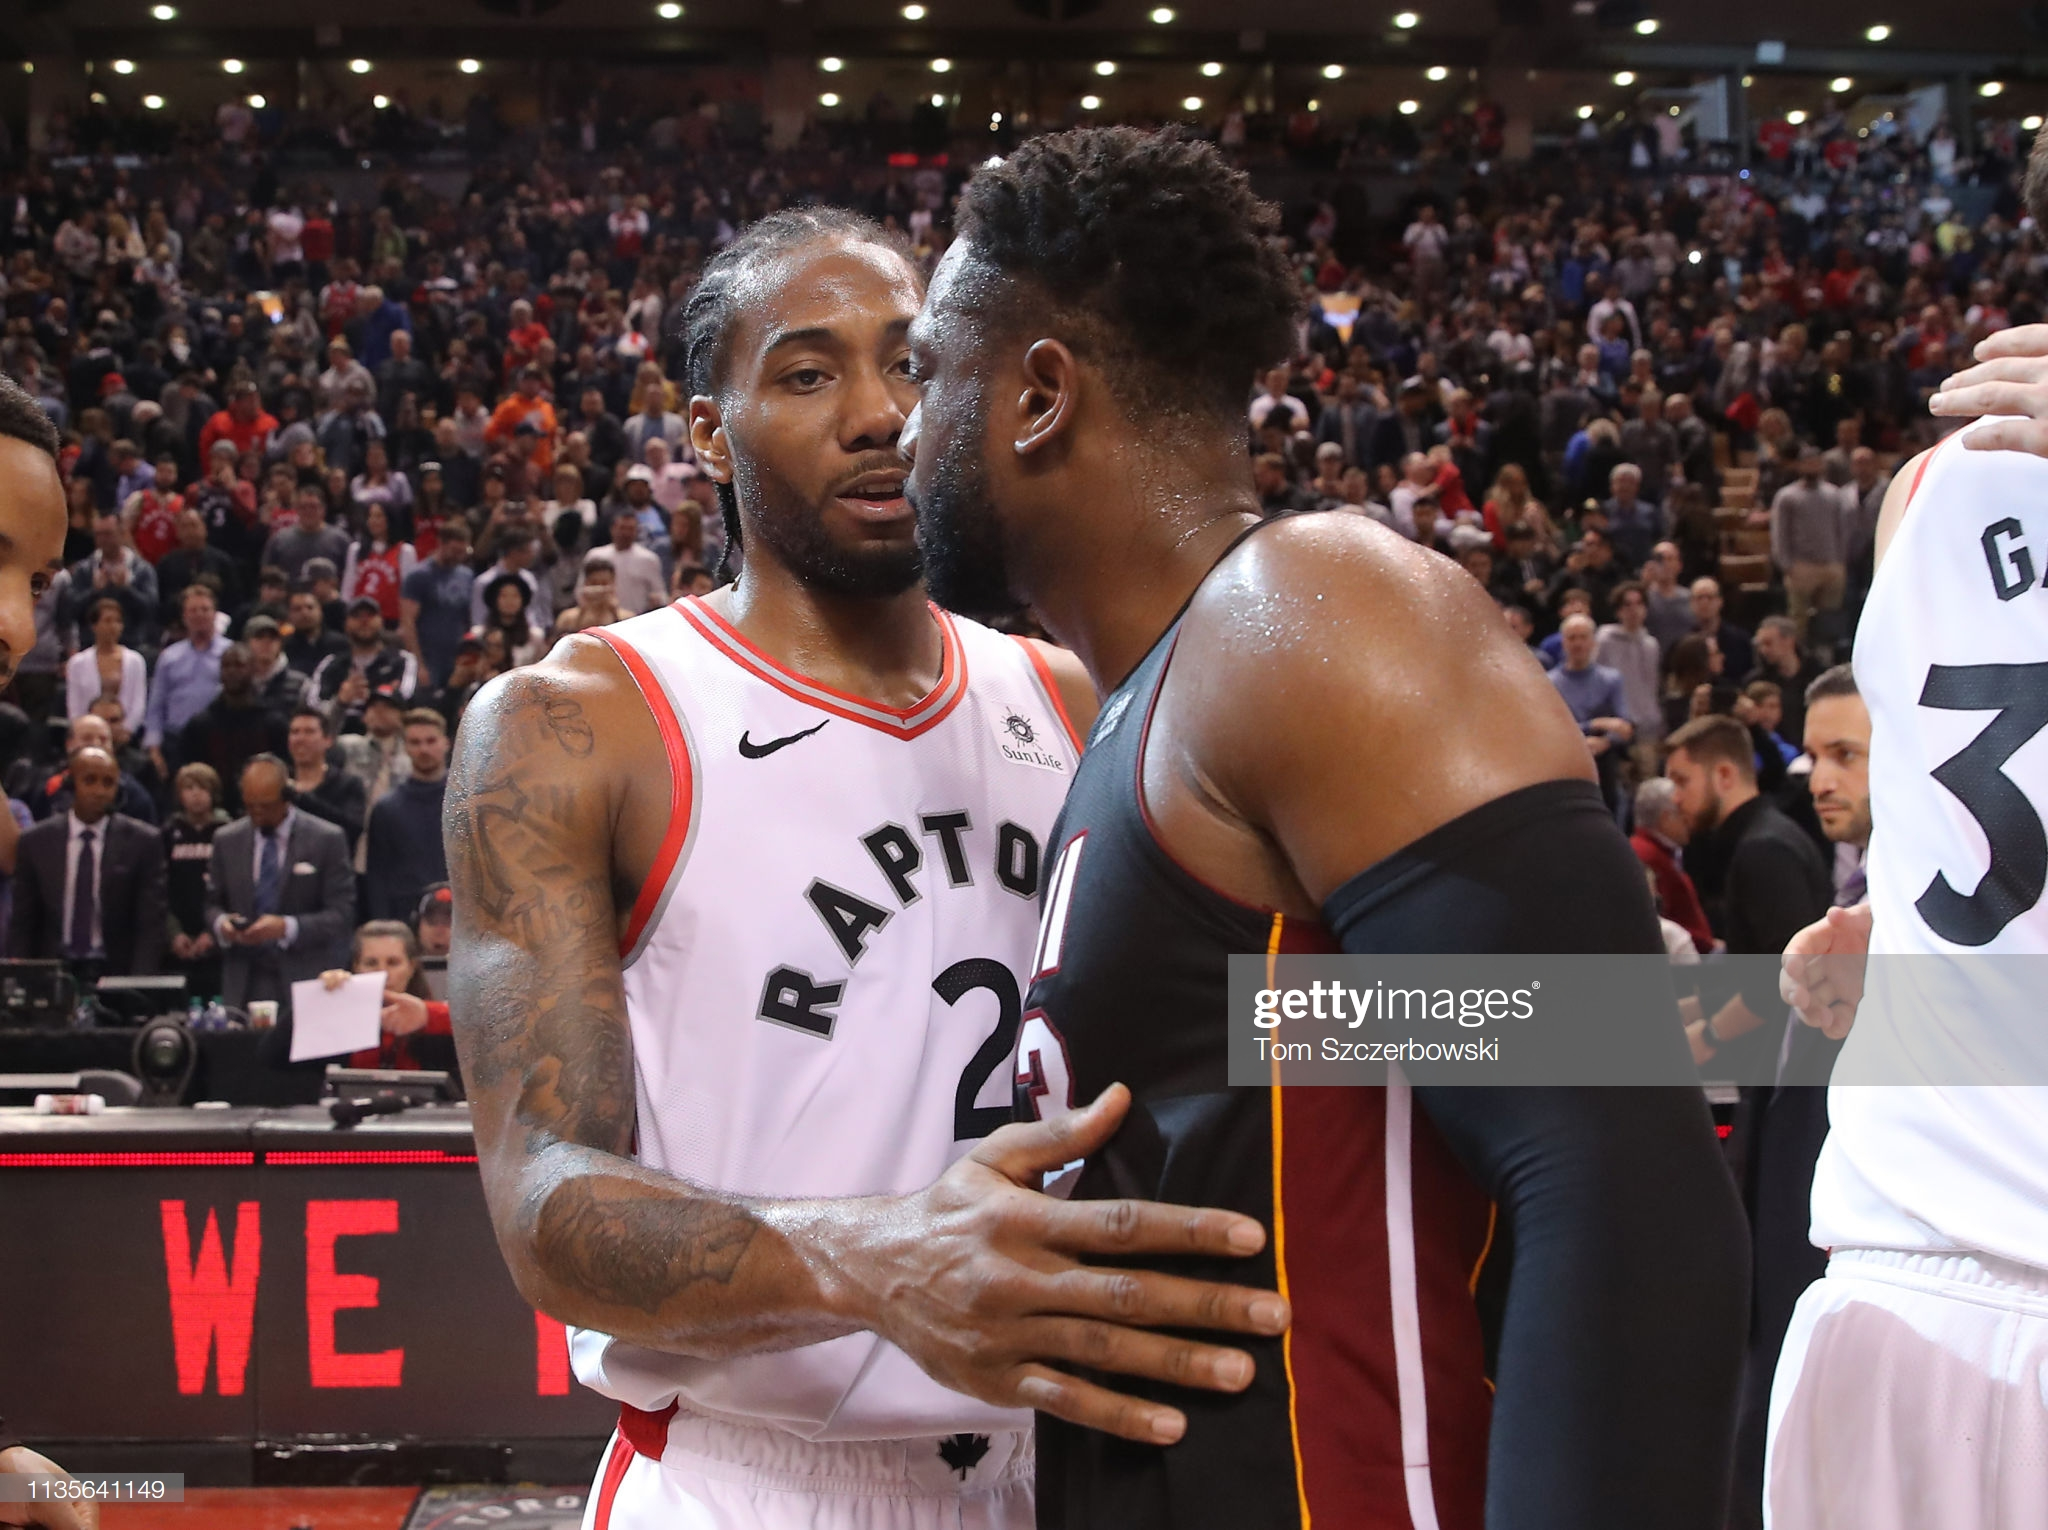 TORONTO, ON - APRIL 07: Dwyane Wade #3 of the Miami Heat is congratulated by Kawhi Leonard #3 of the Toronto Raptors following their NBA game as Wade plans to retire at the end of the season this week at Scotiabank Arena on April 7, 2019 in Toronto, Canada. NOTE TO USER: User expressly acknowledges and agrees that, by downloading and or using this photograph, User is consenting to the terms and conditions of the Getty Images License Agreement. (Photo by Tom Szczerbowski/Getty Images)